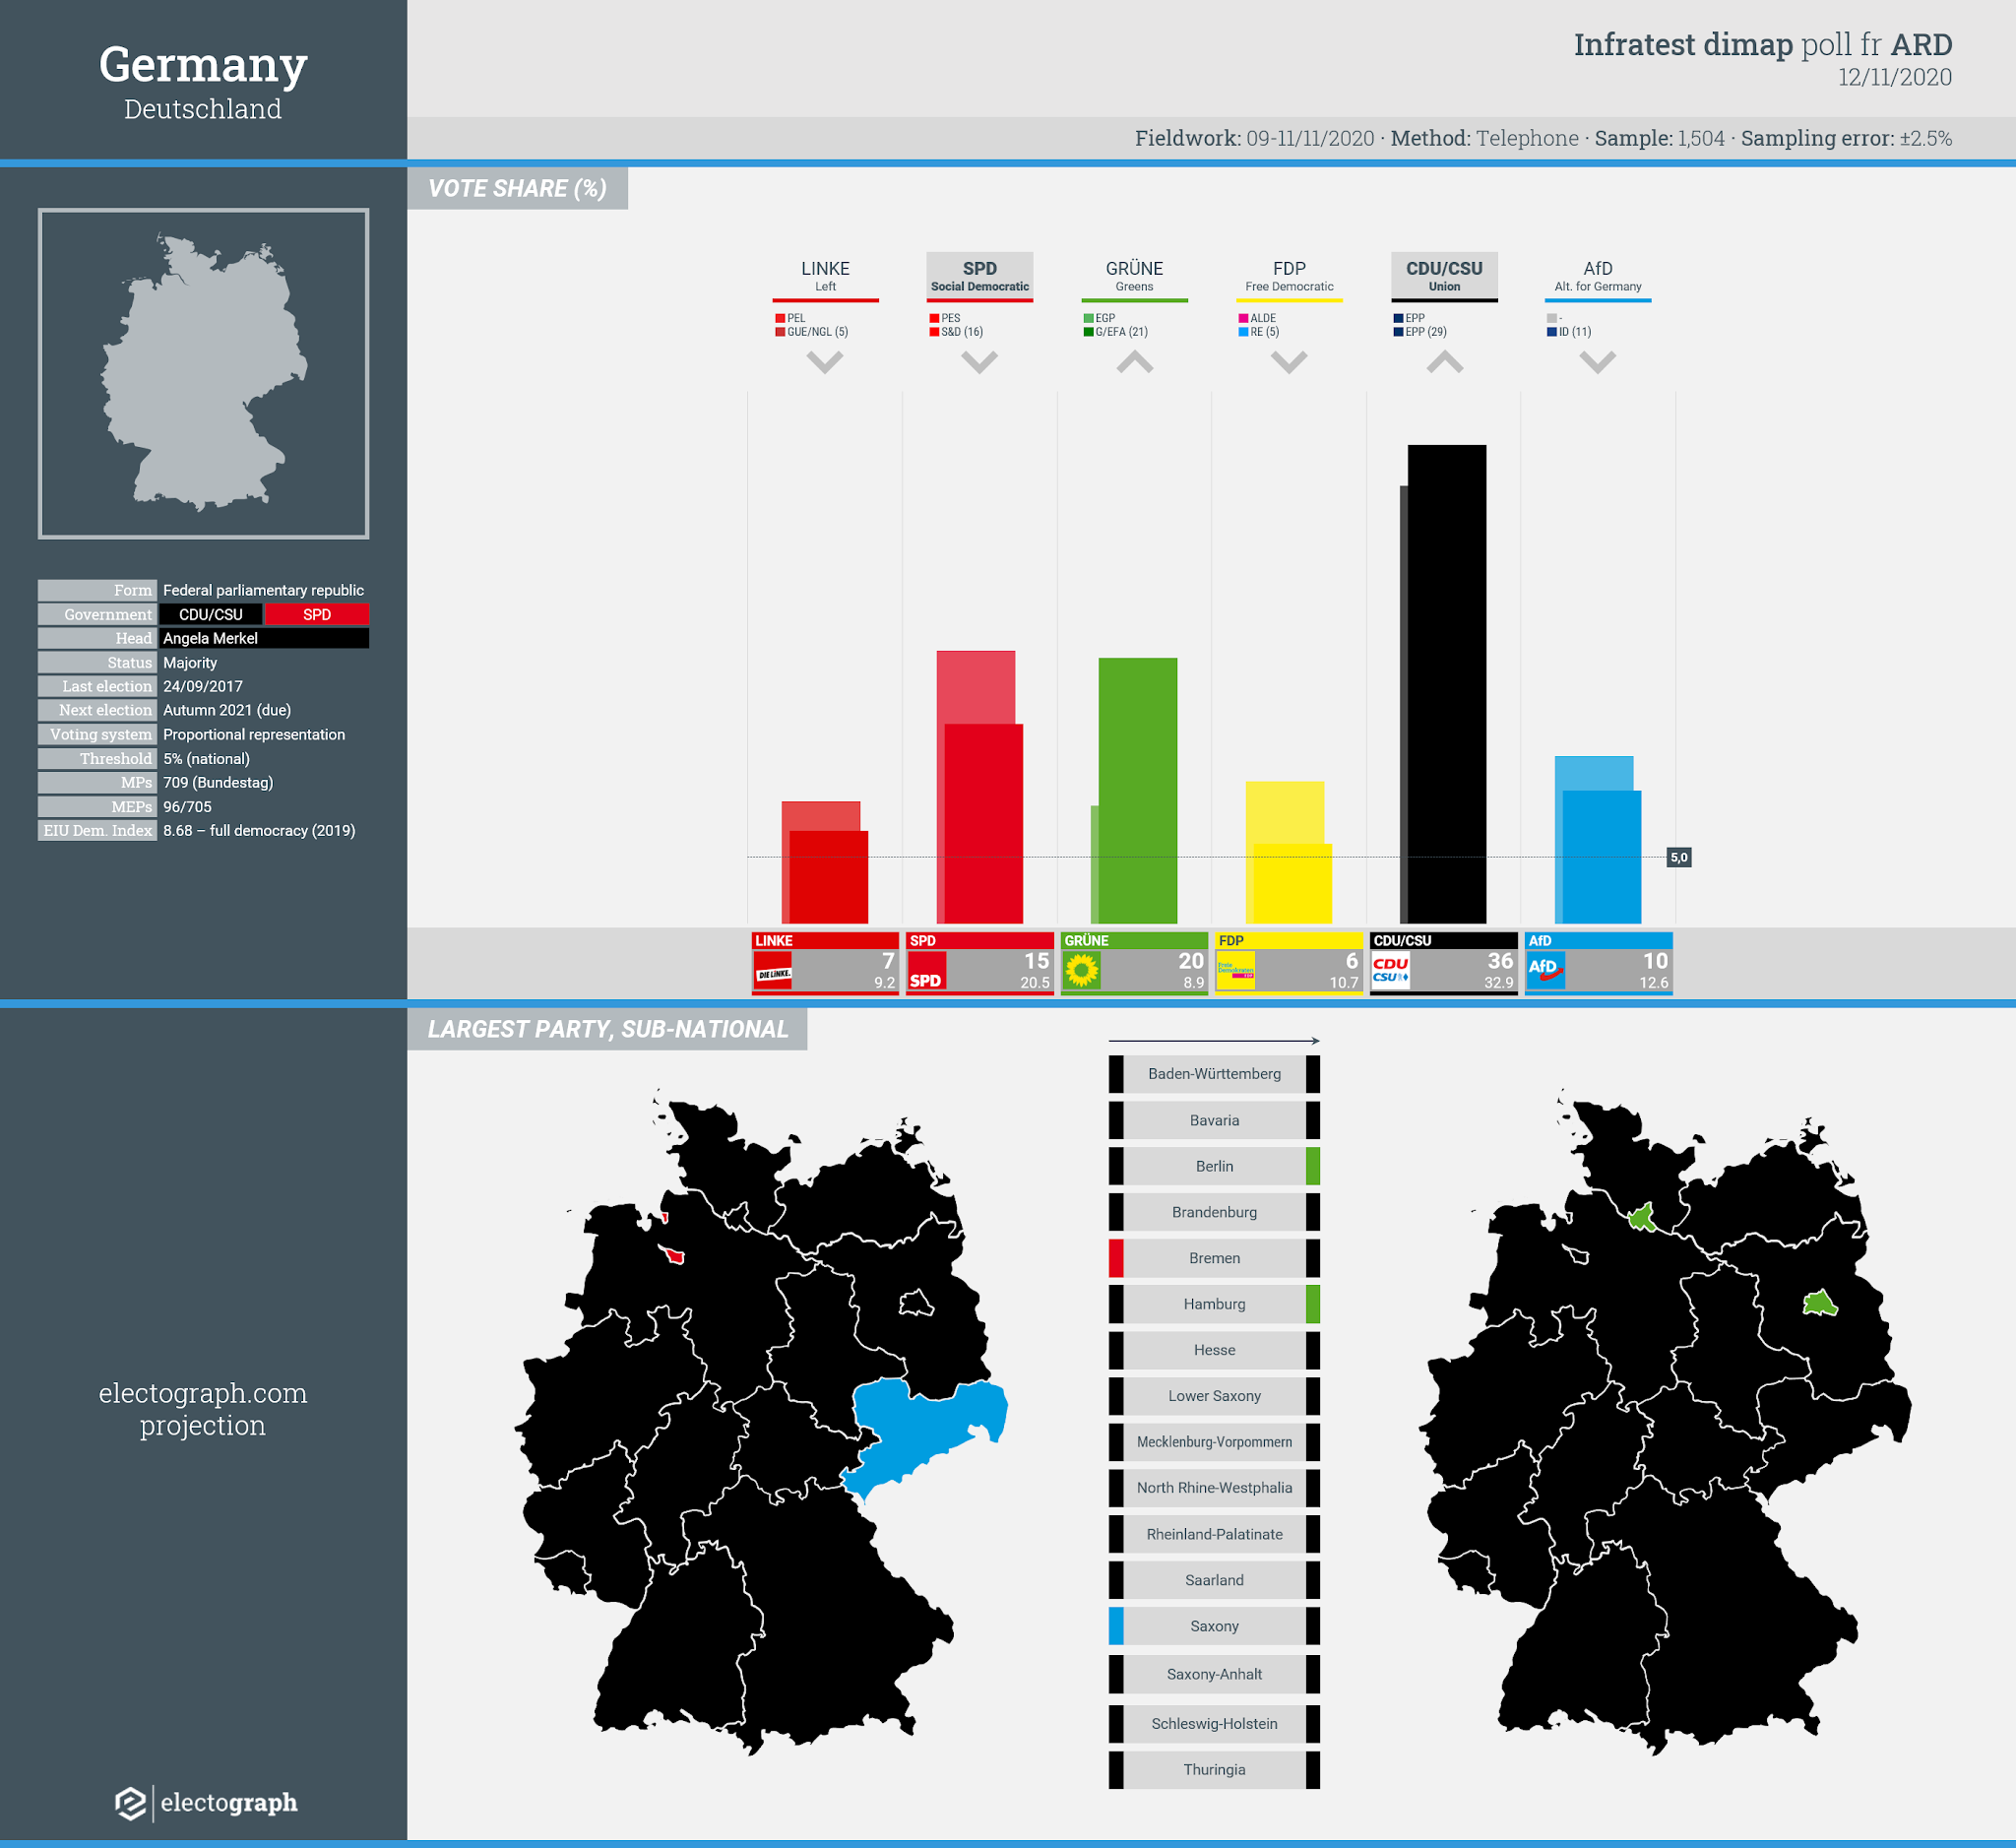 GERMANY: Infratest dimap poll chart for ARD, 12 November 2020